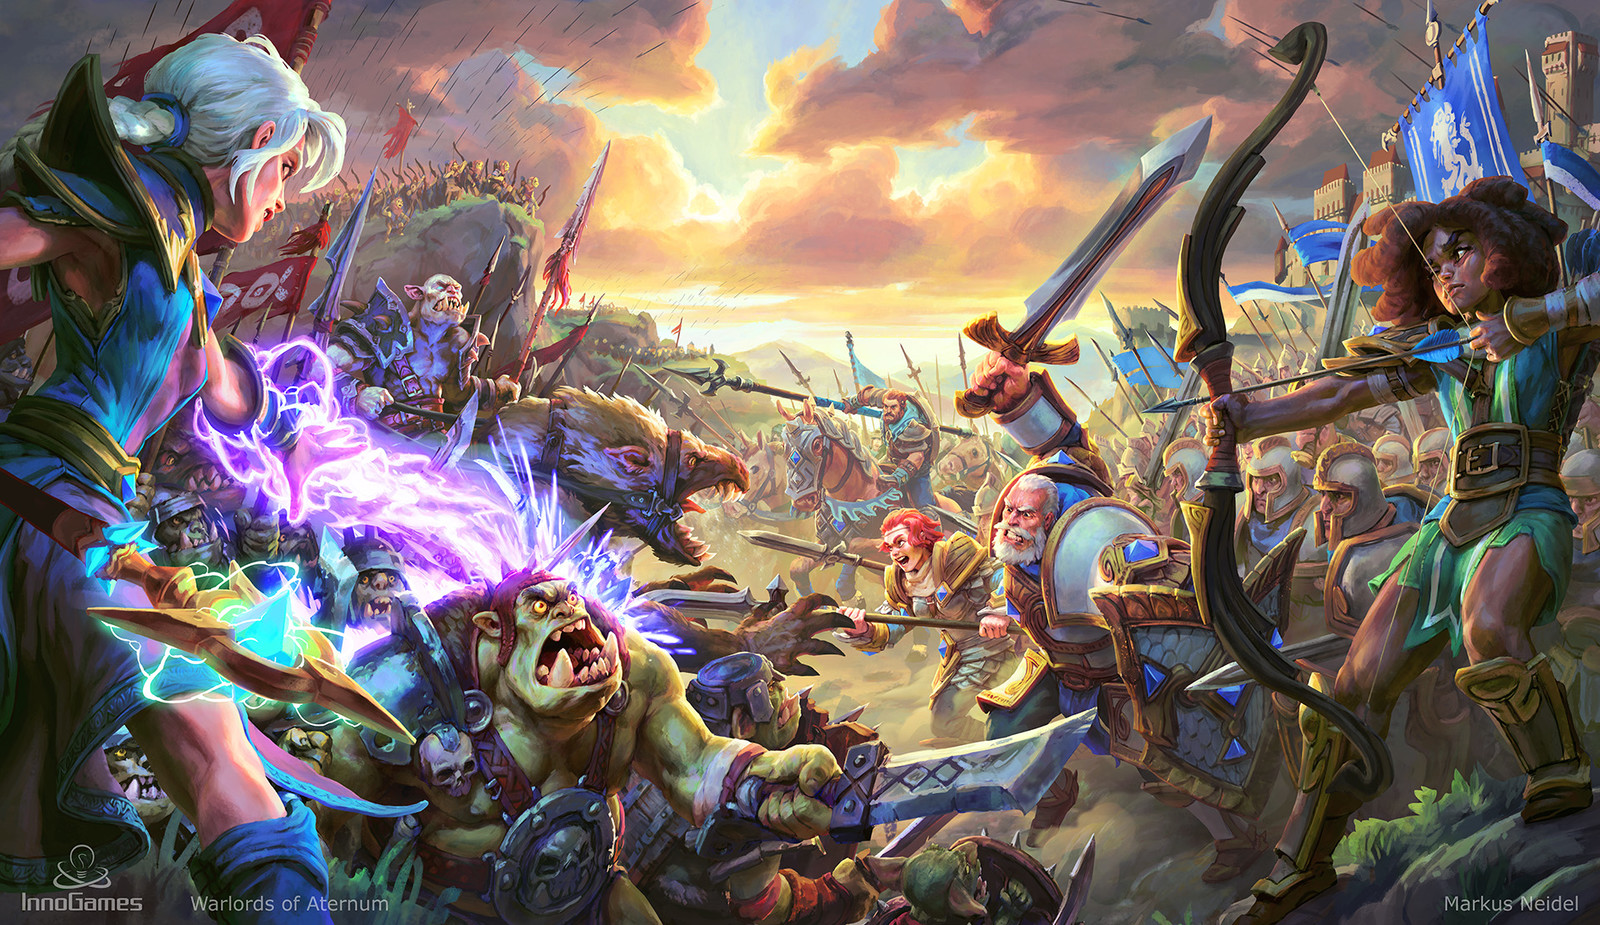 Warlords of Aternum - Key Art